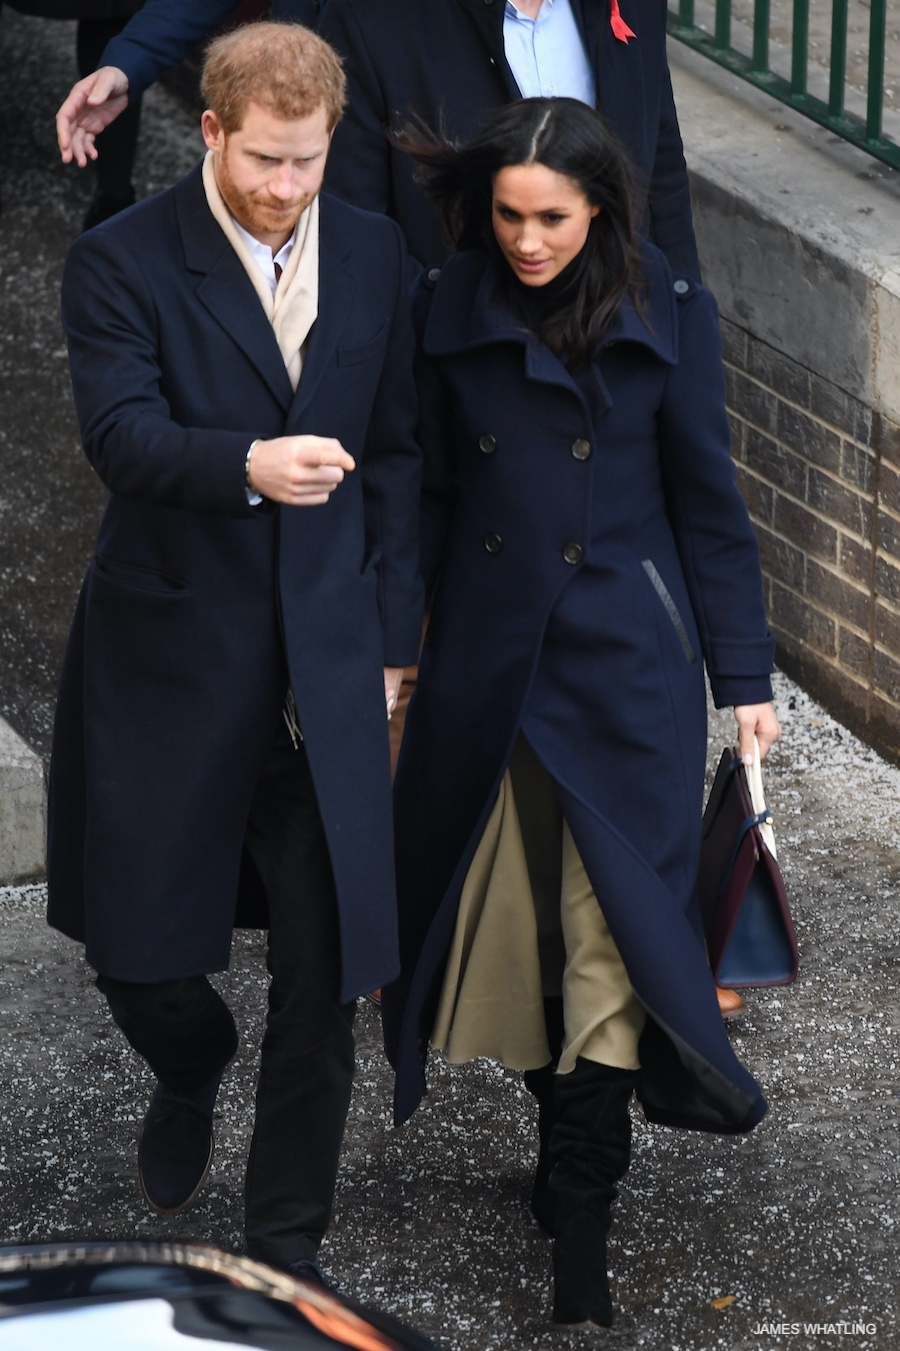 Meghan Markle in her Mackage Elodie coat in navy blue